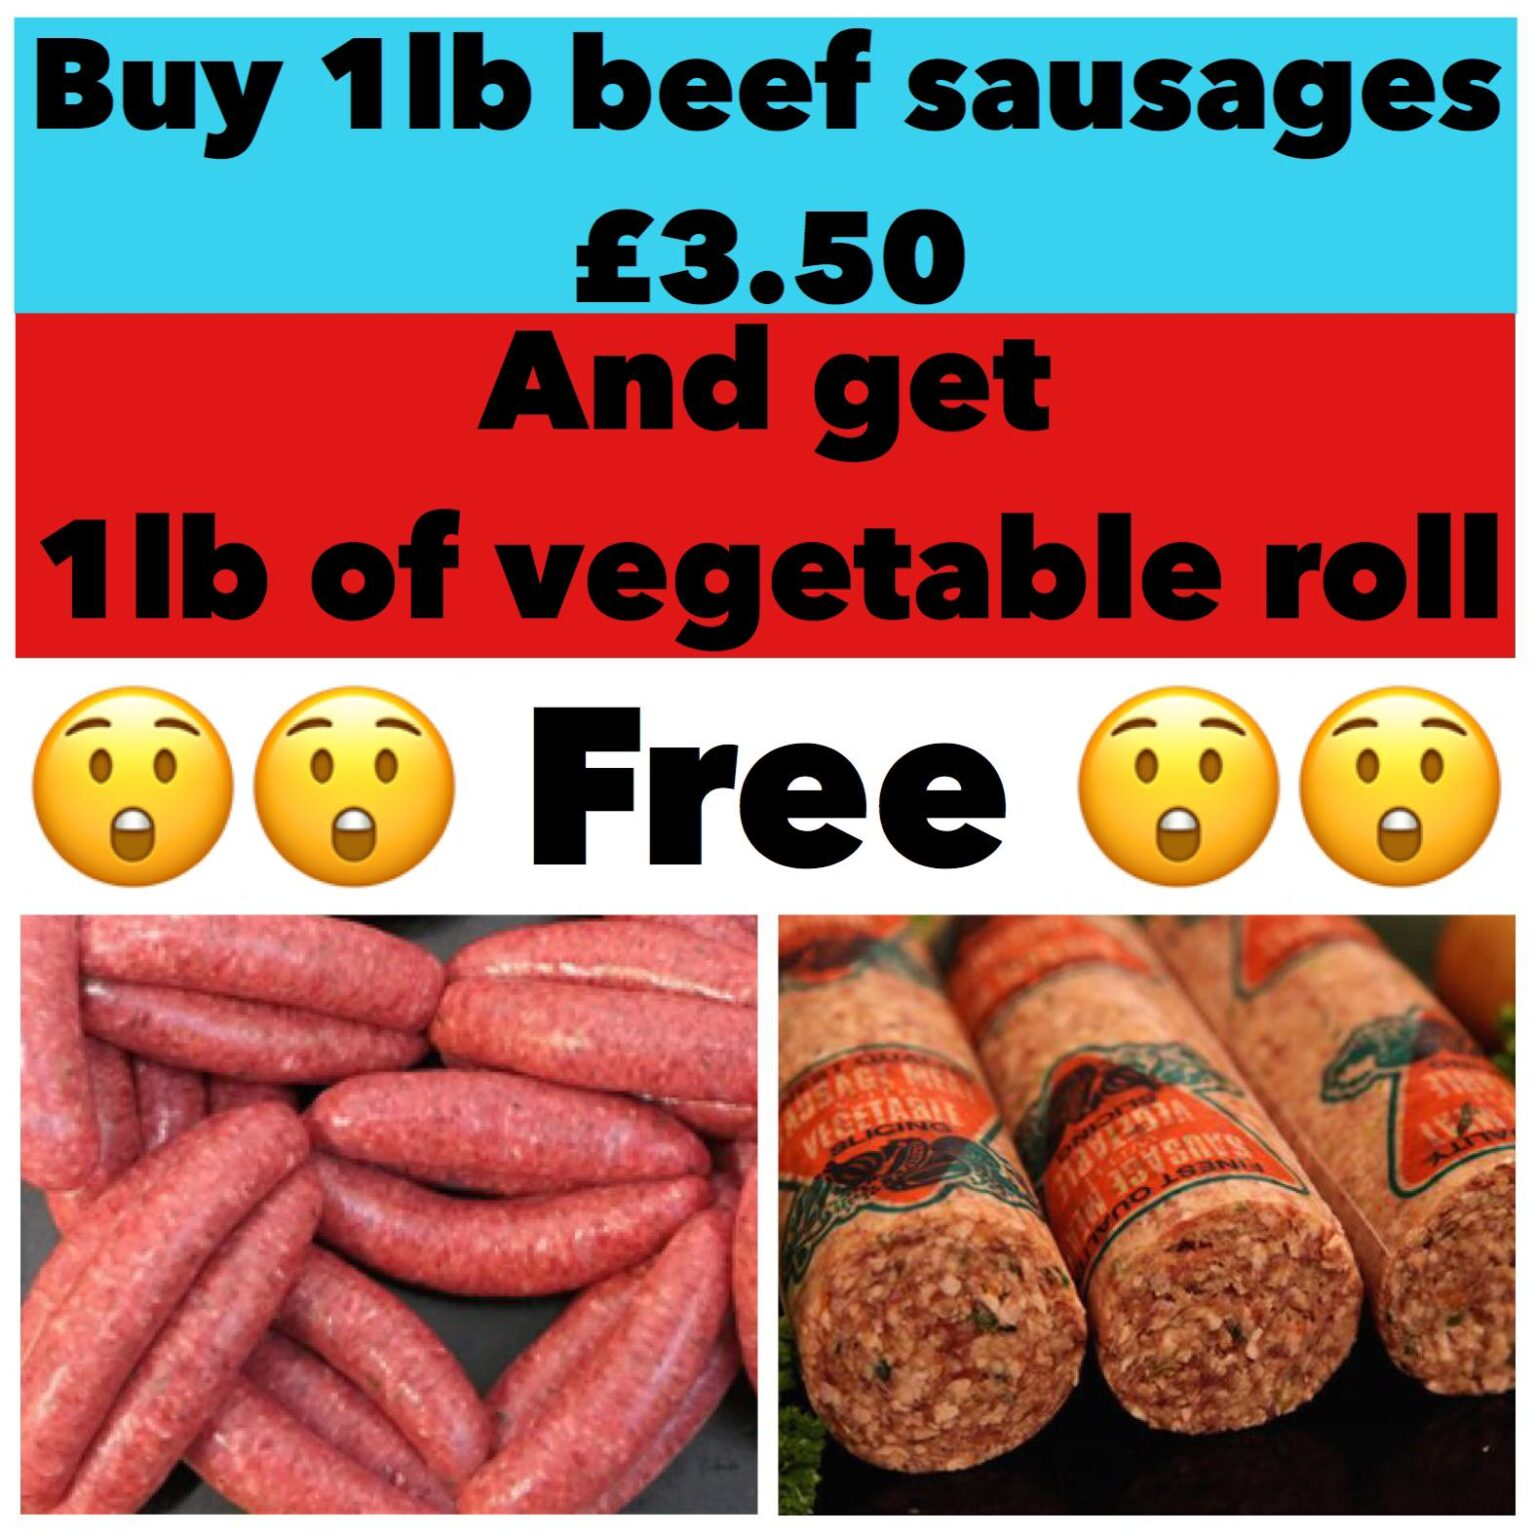 Buy 1lb of Beef Sausages and get 1lb of Vegetable Roll FREE